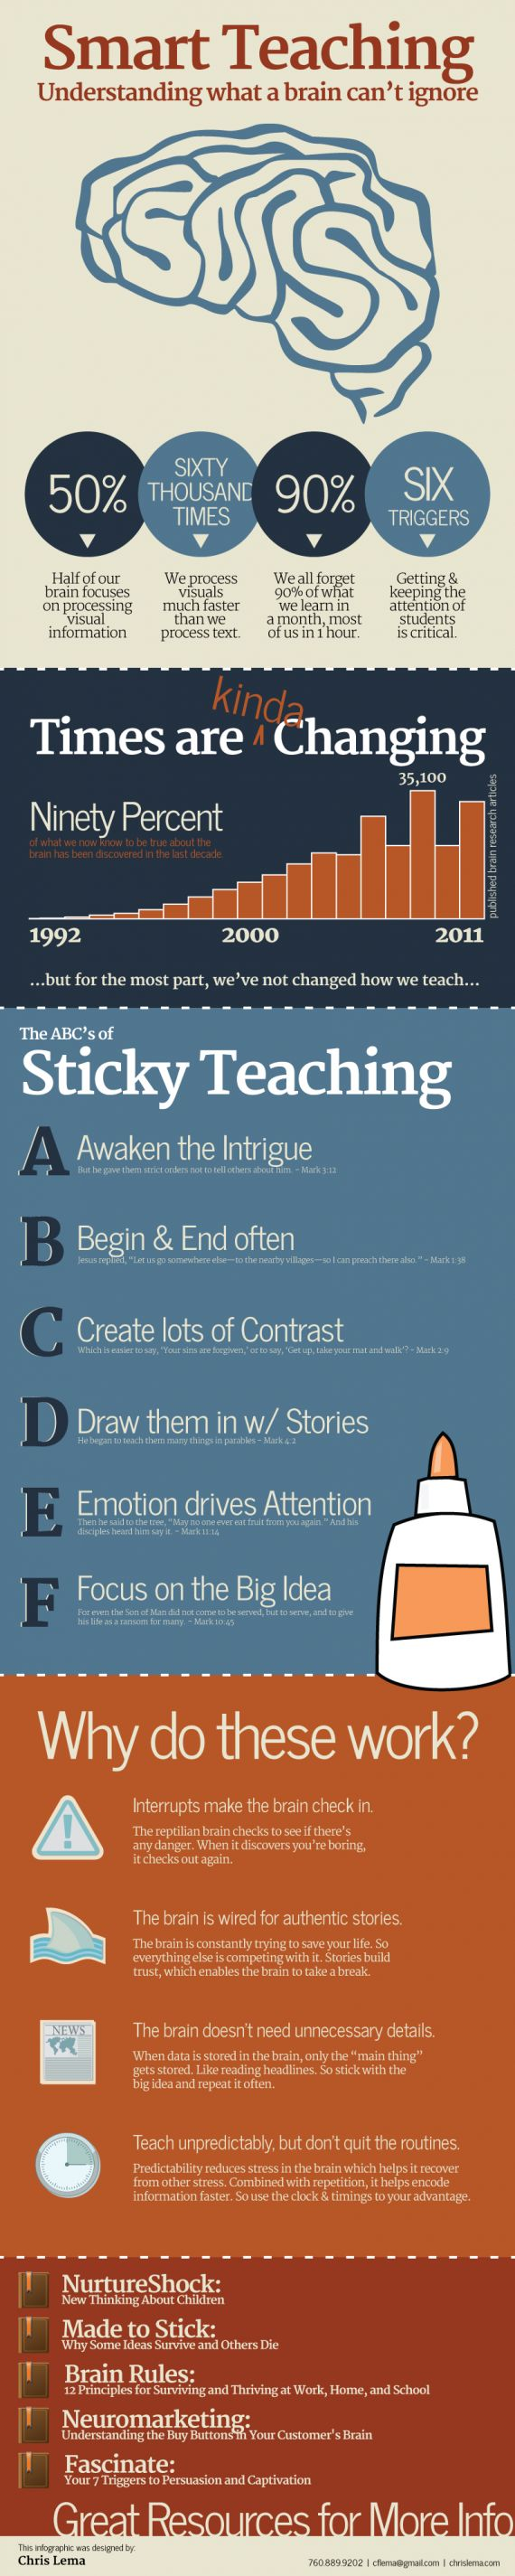 STICKY teaching....what makes things stick in the brain and other interesting facts